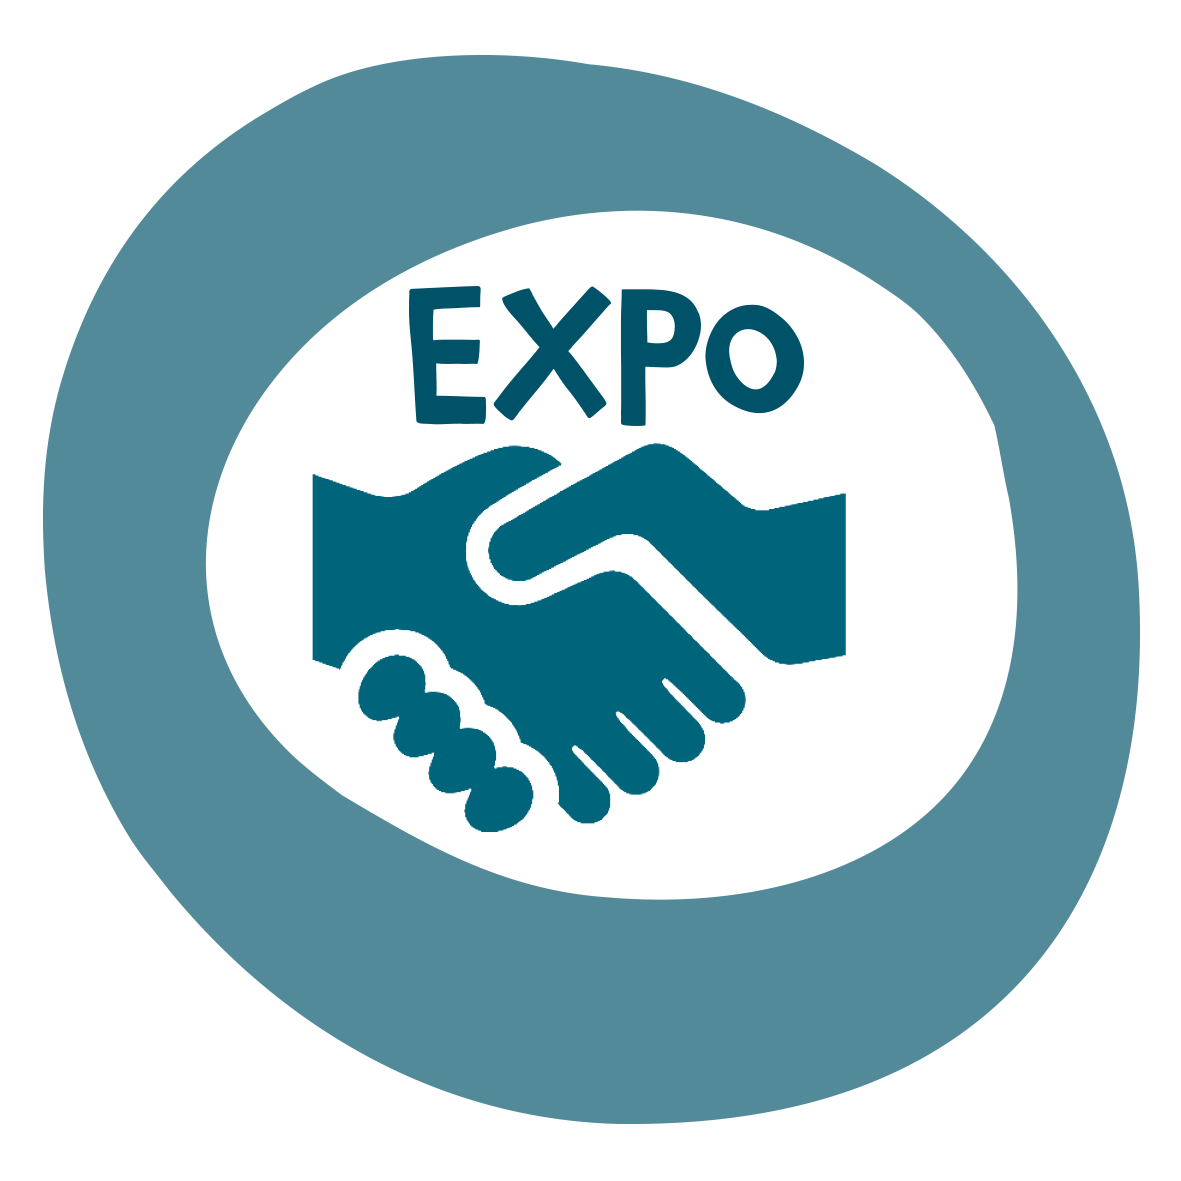 Product Earth Expo - Expo